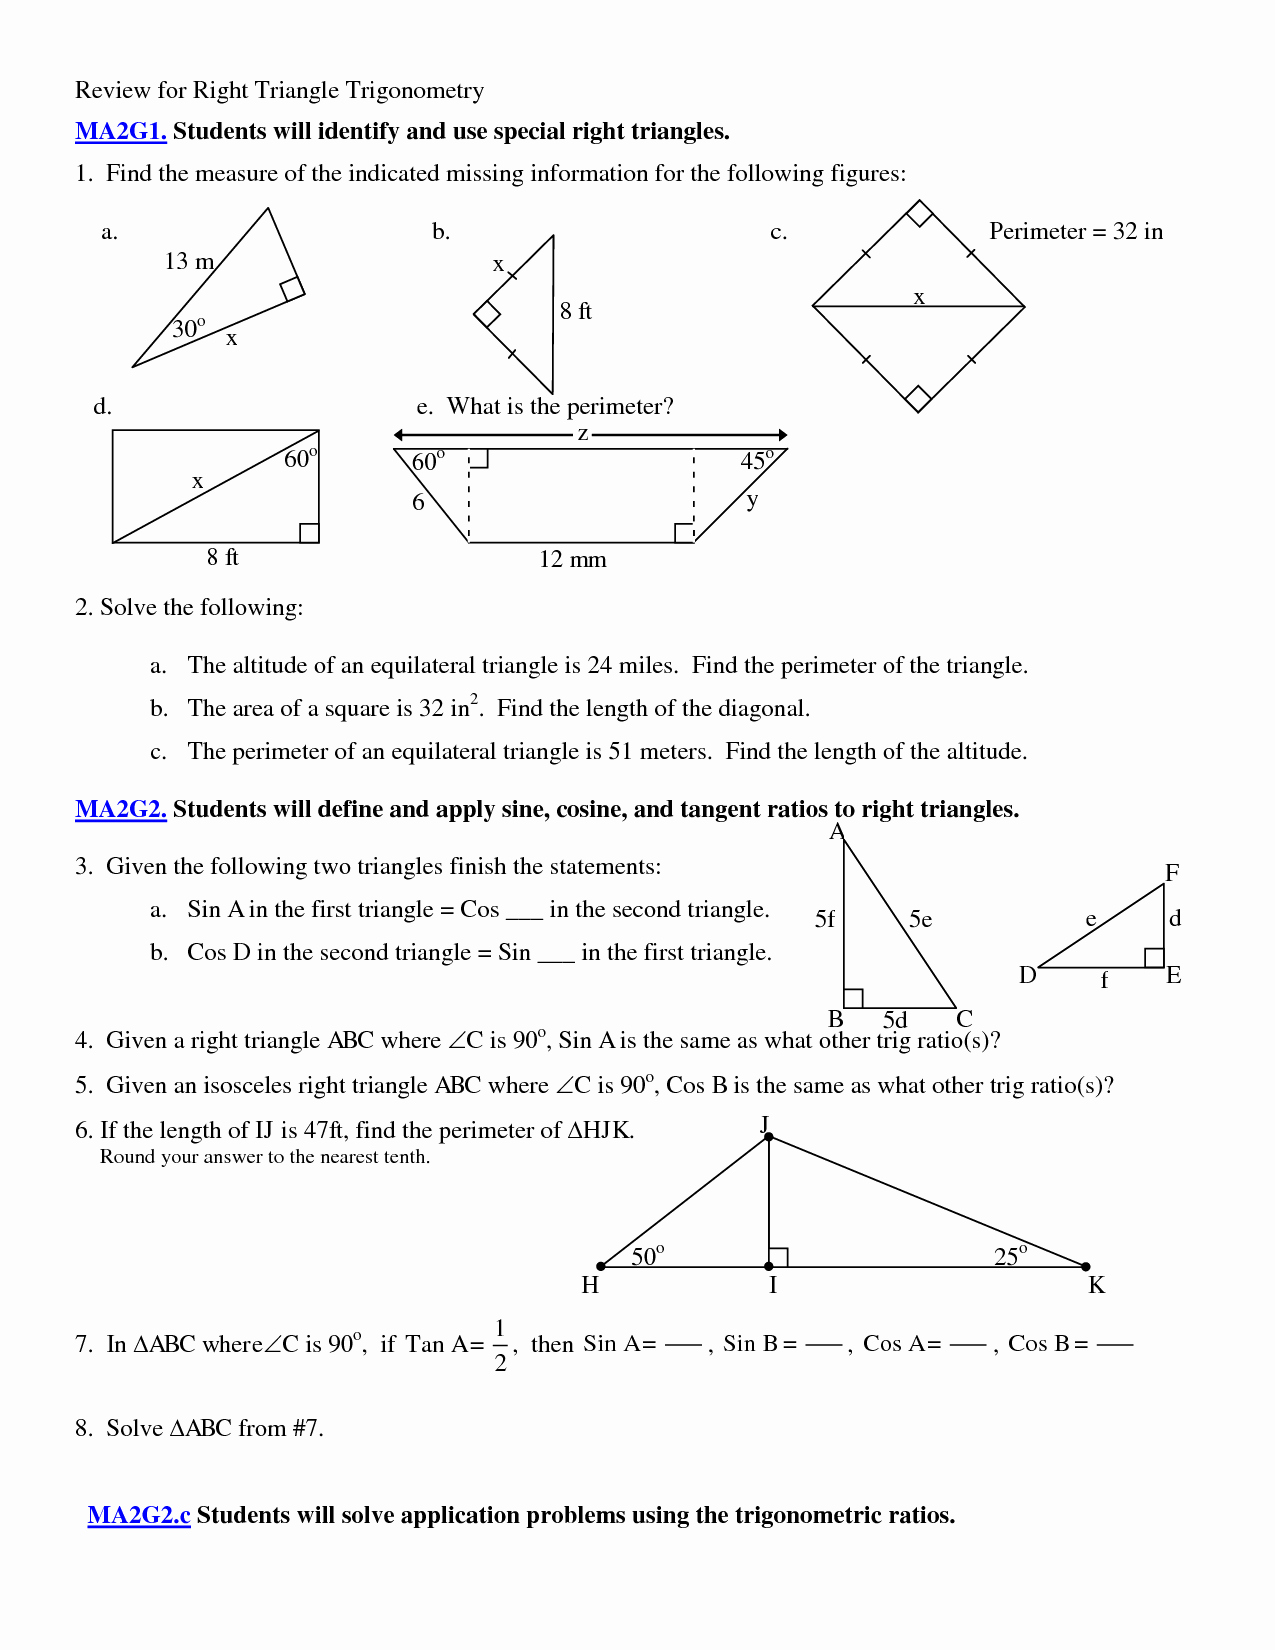 Right Triangle Trigonometry Worksheet Answers Best Of 5 Best Of Applications Trigonometry Worksheet